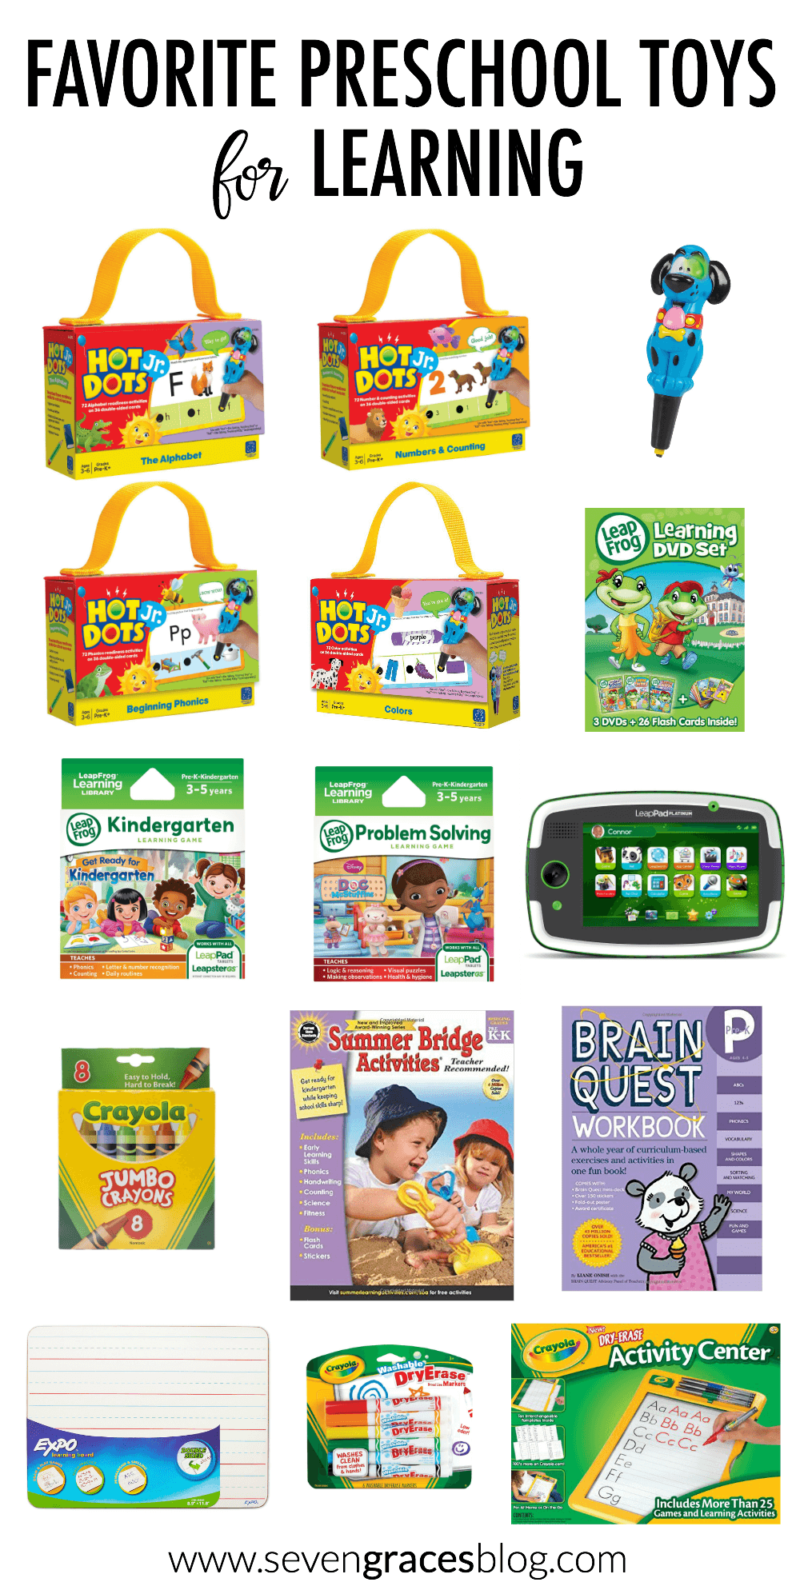 Best Preschooler Toys : Best preschool toys for learning seven graces